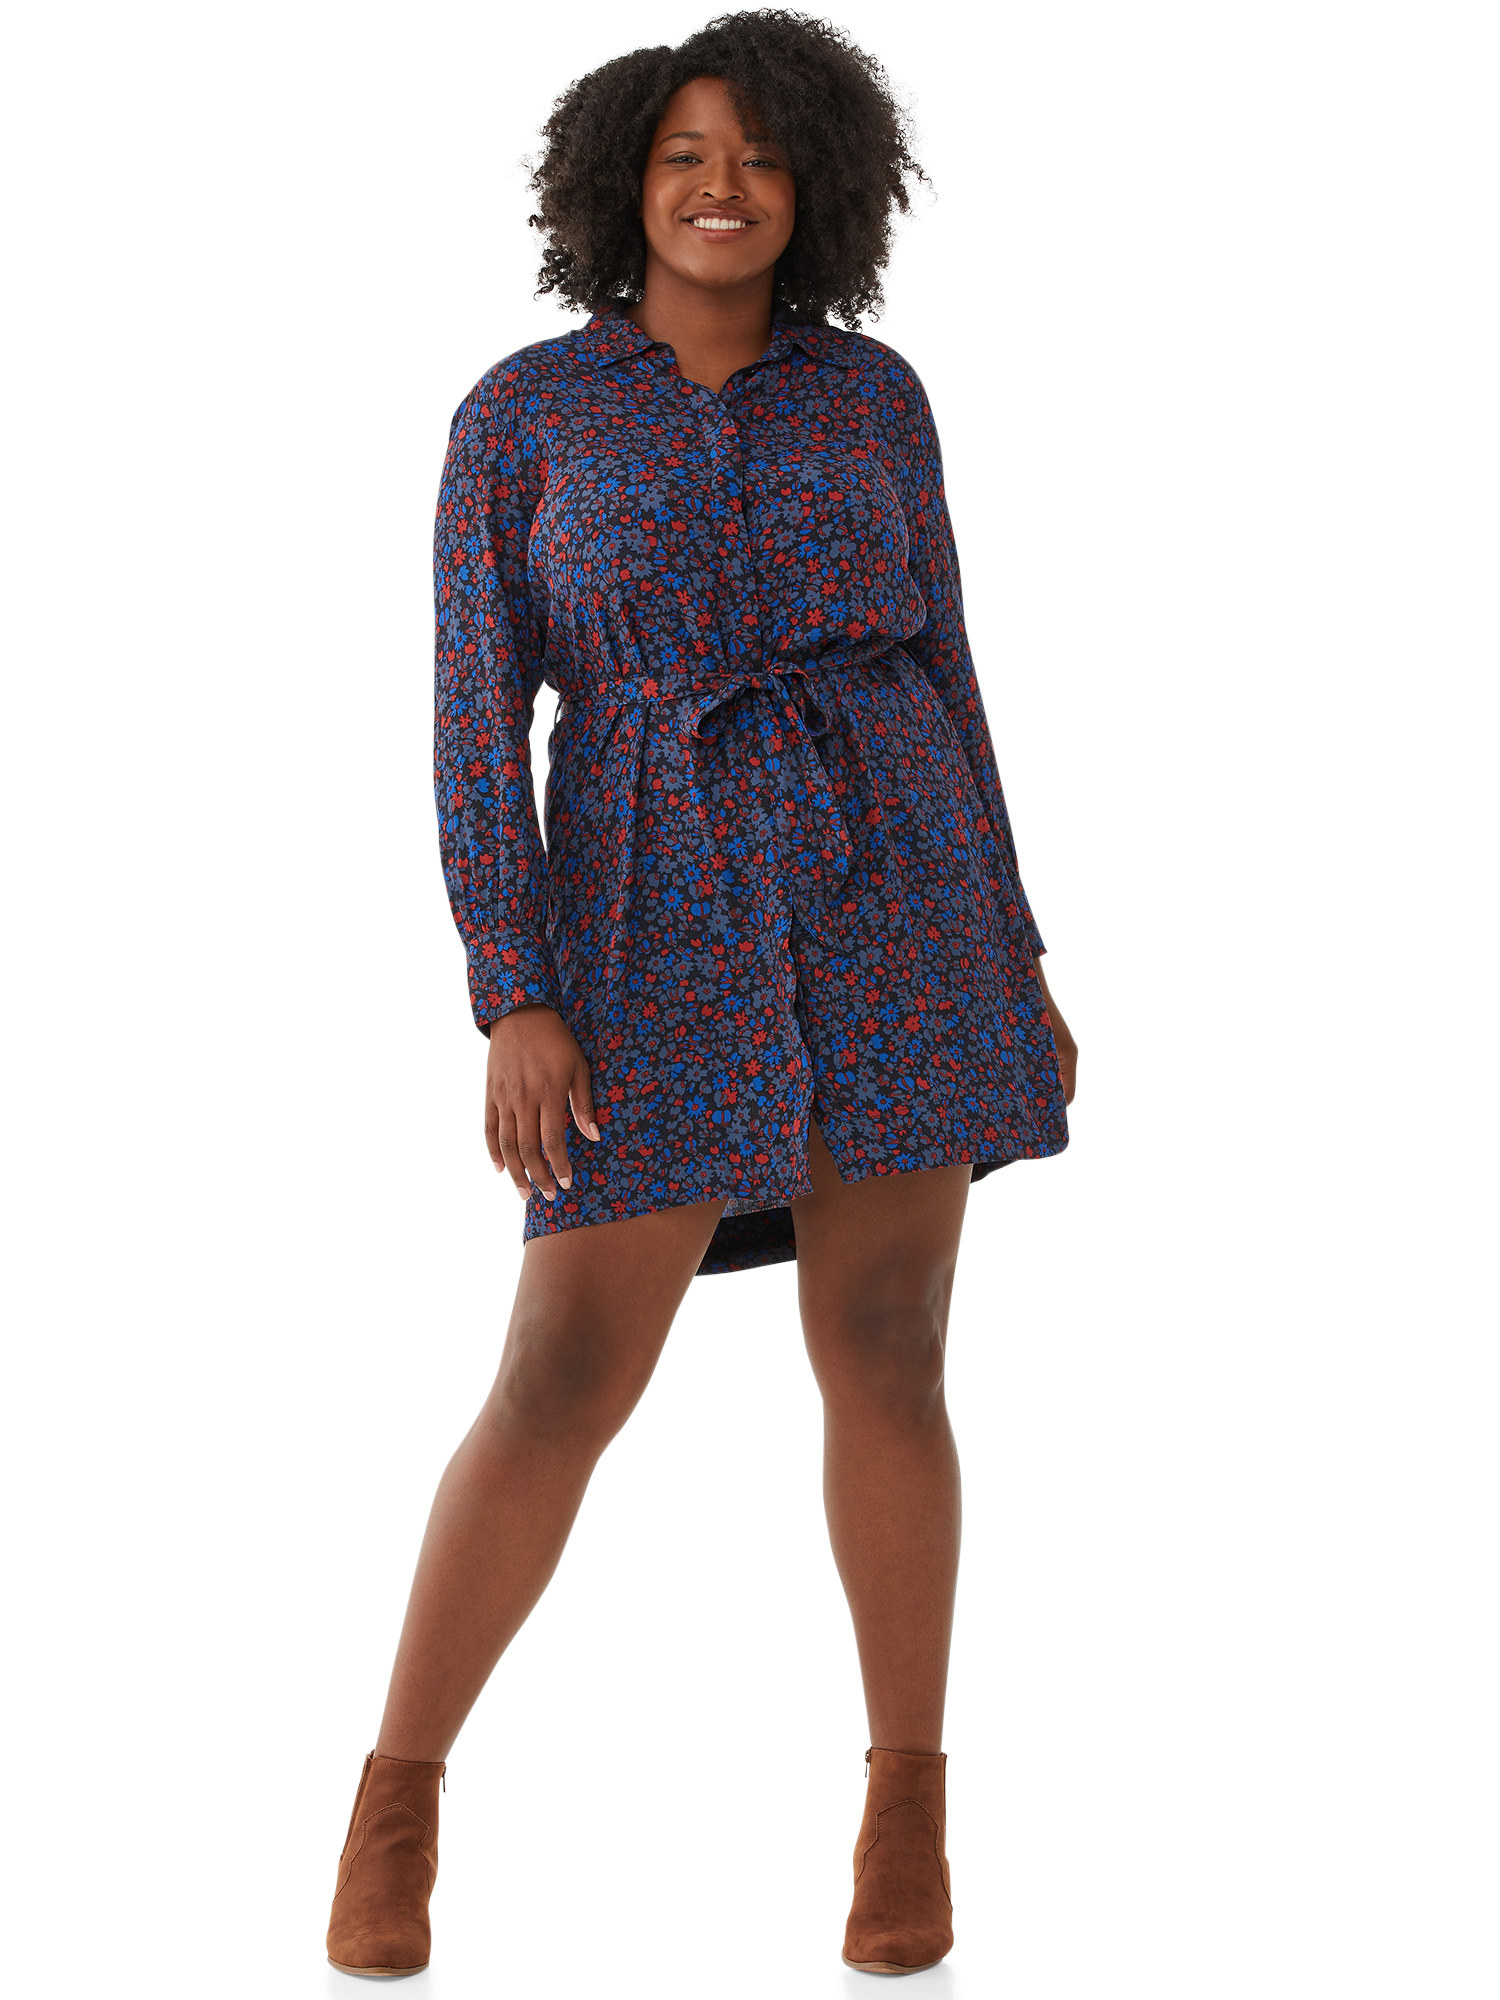 The navy blue and red mid-length shirt dress